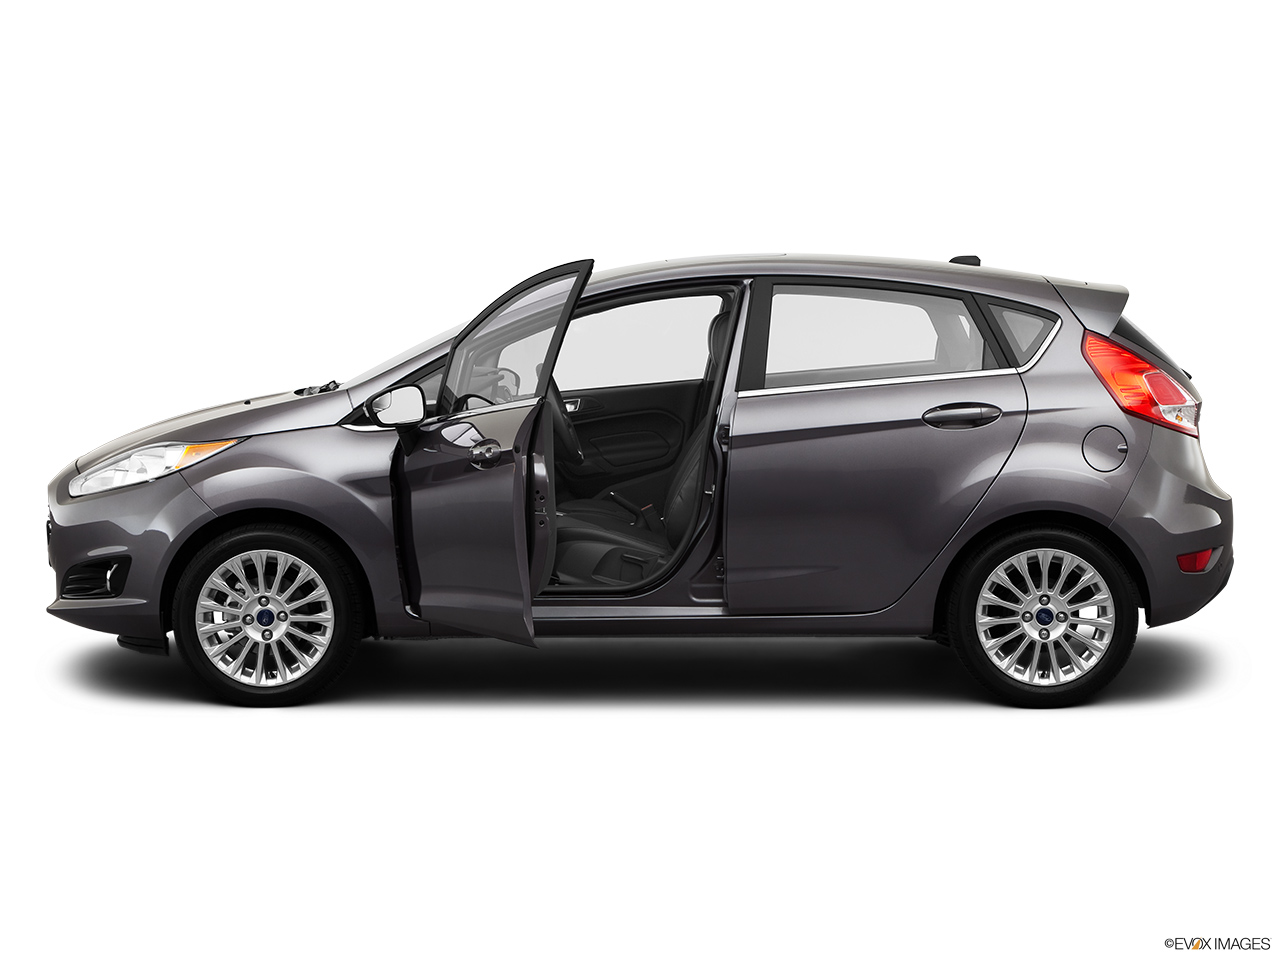 2014 Ford Fiesta 5dr Hatchback Titanium - Driver\u0027s side profile with drivers side door open